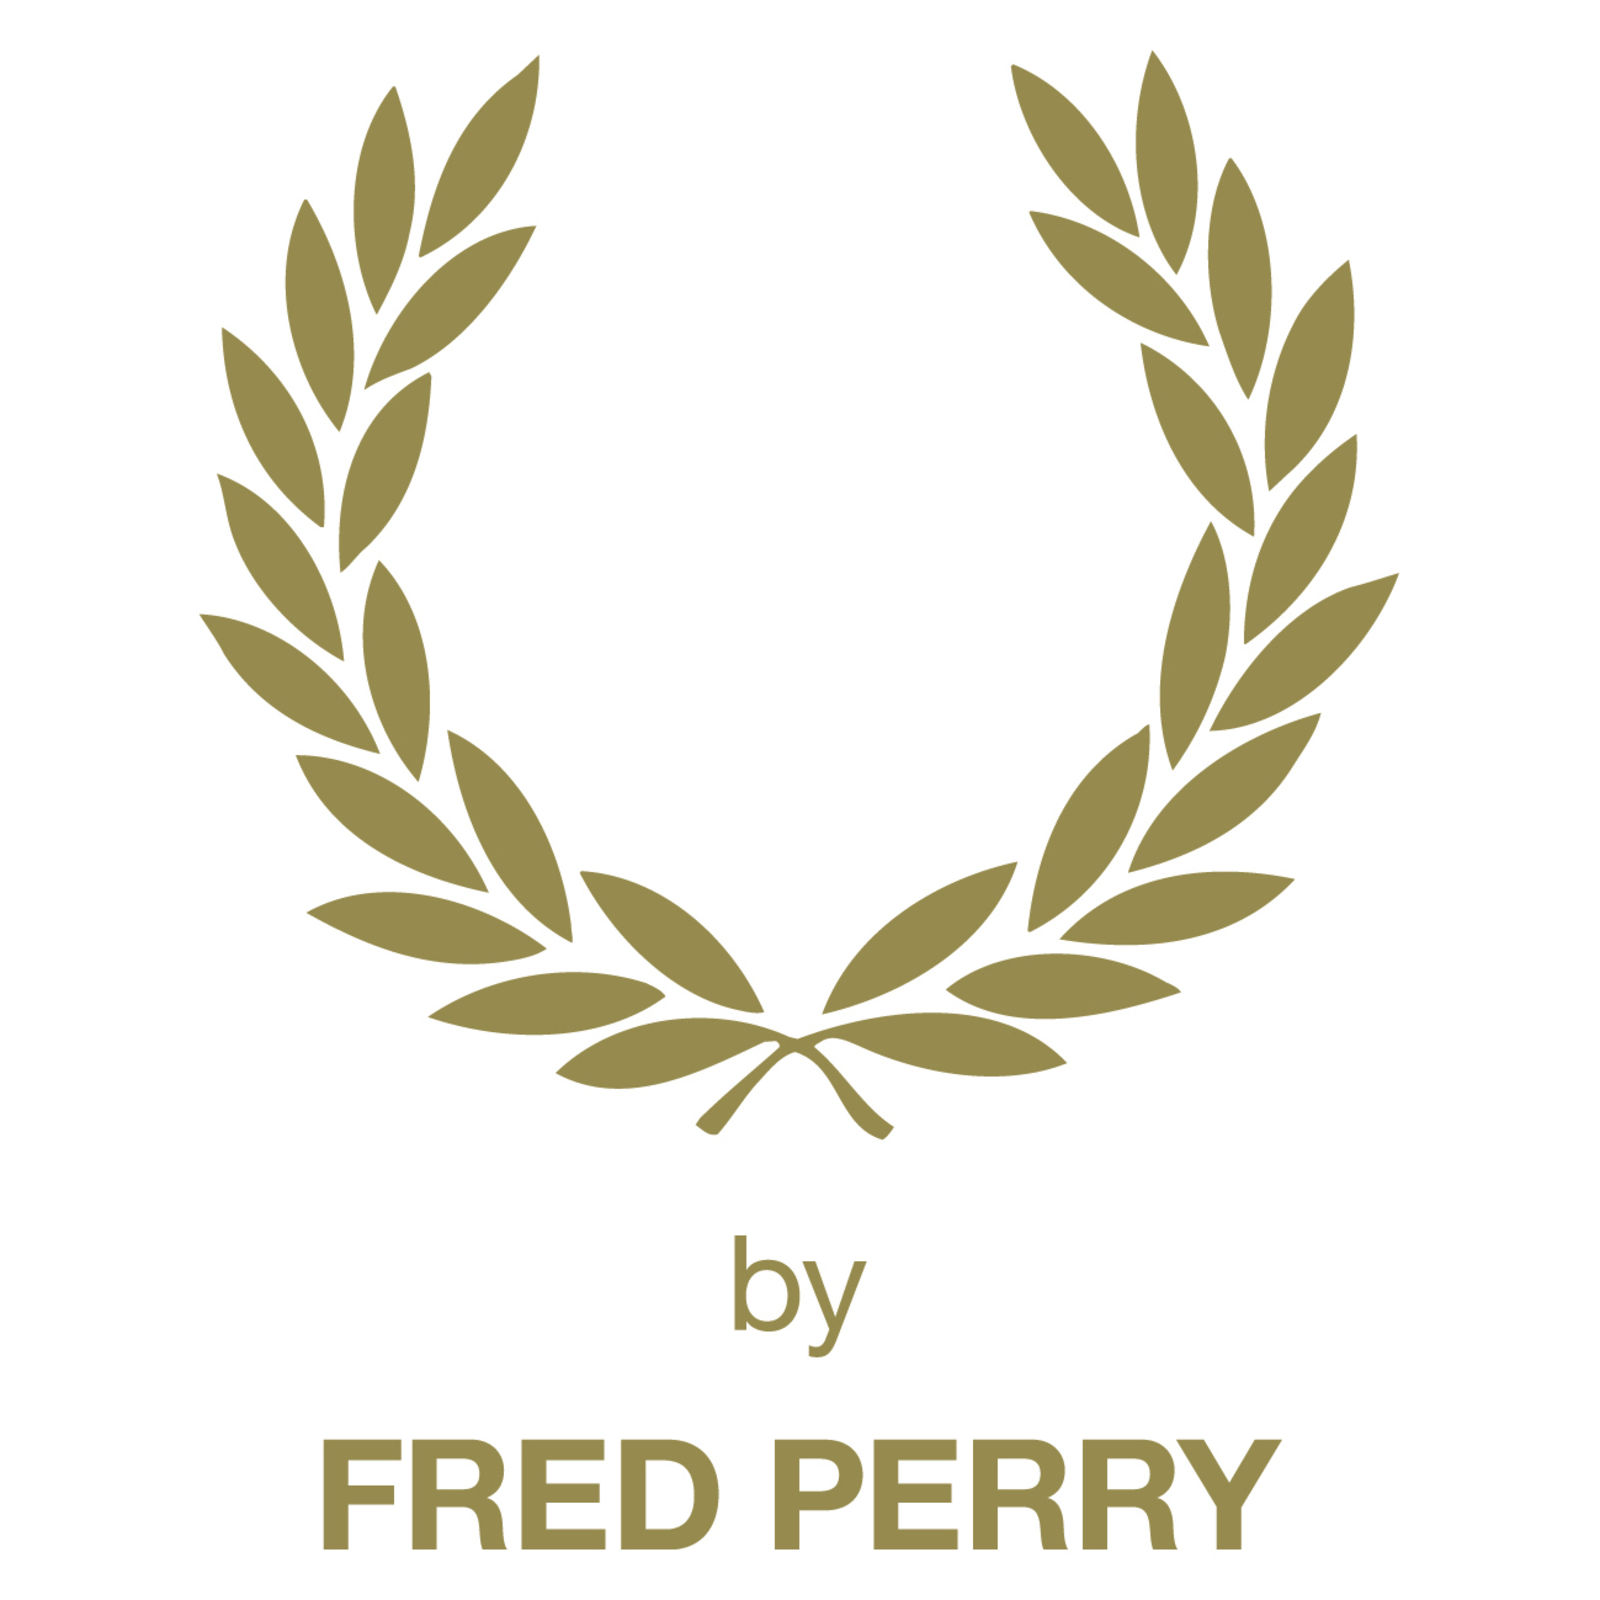 FRED PERRY Laurel Wreath (Image 1)